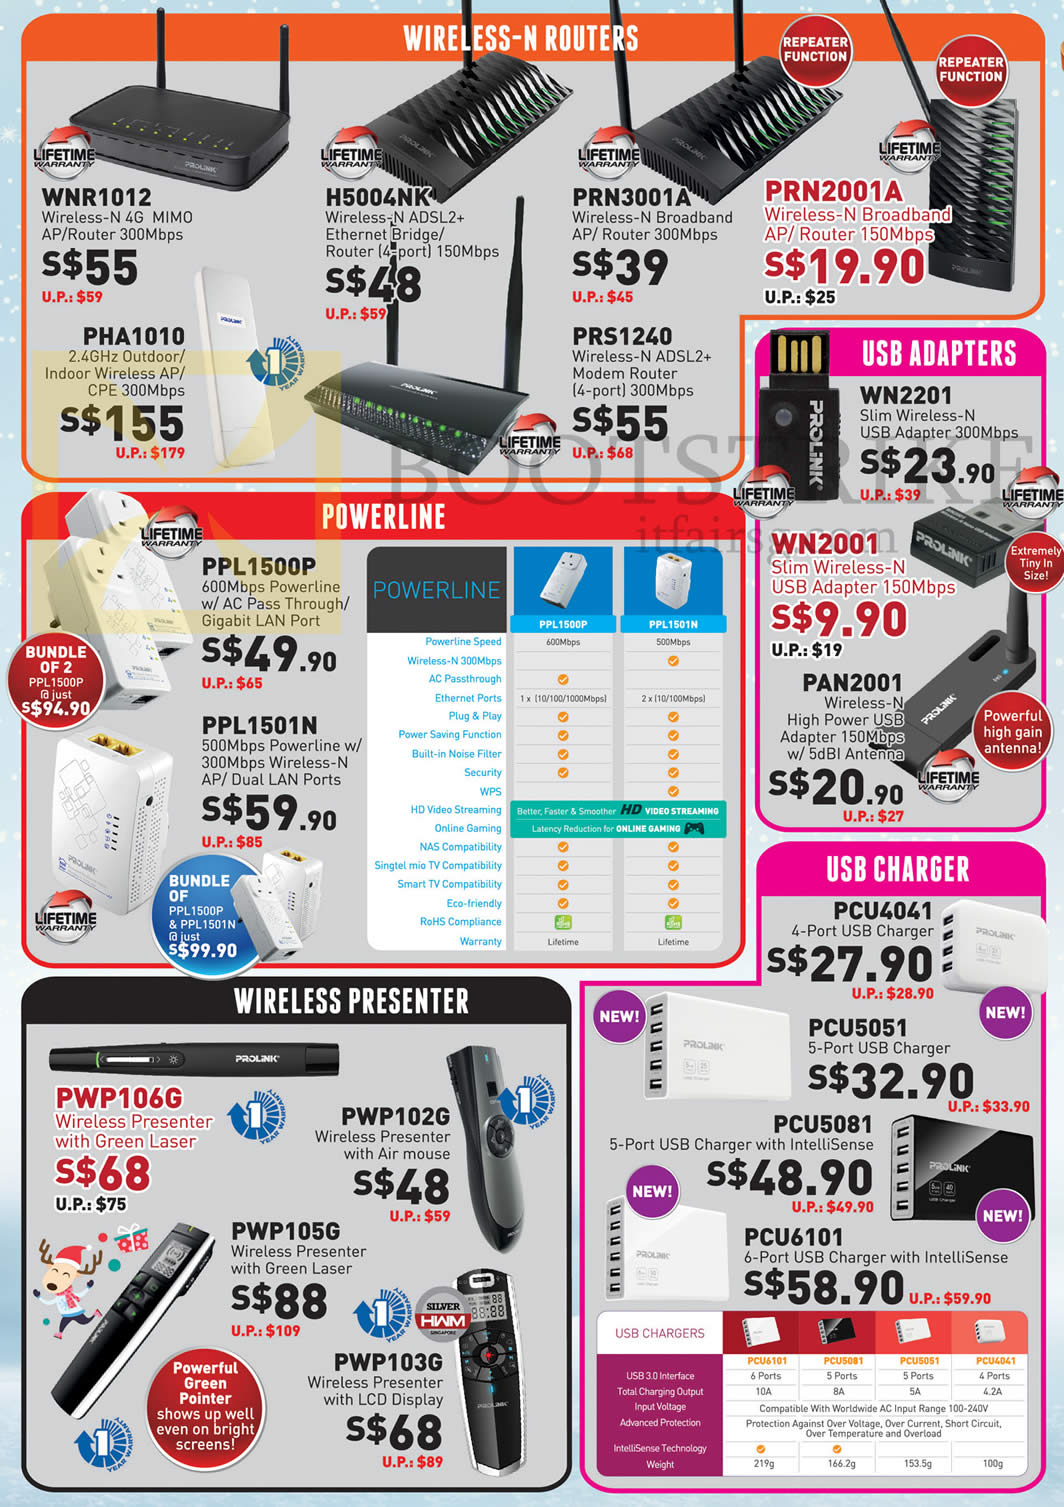 SITEX 2015 price list image brochure of Prolink Wireless N Routers, Powerline, USB Adapters, USB Charger, WNR1012, H5004NK, PRN3001A, 2001A, WN2001, 2201, PWP106G, 102G, 105G, 103G, PCU4041, 5051, 5081, 6101